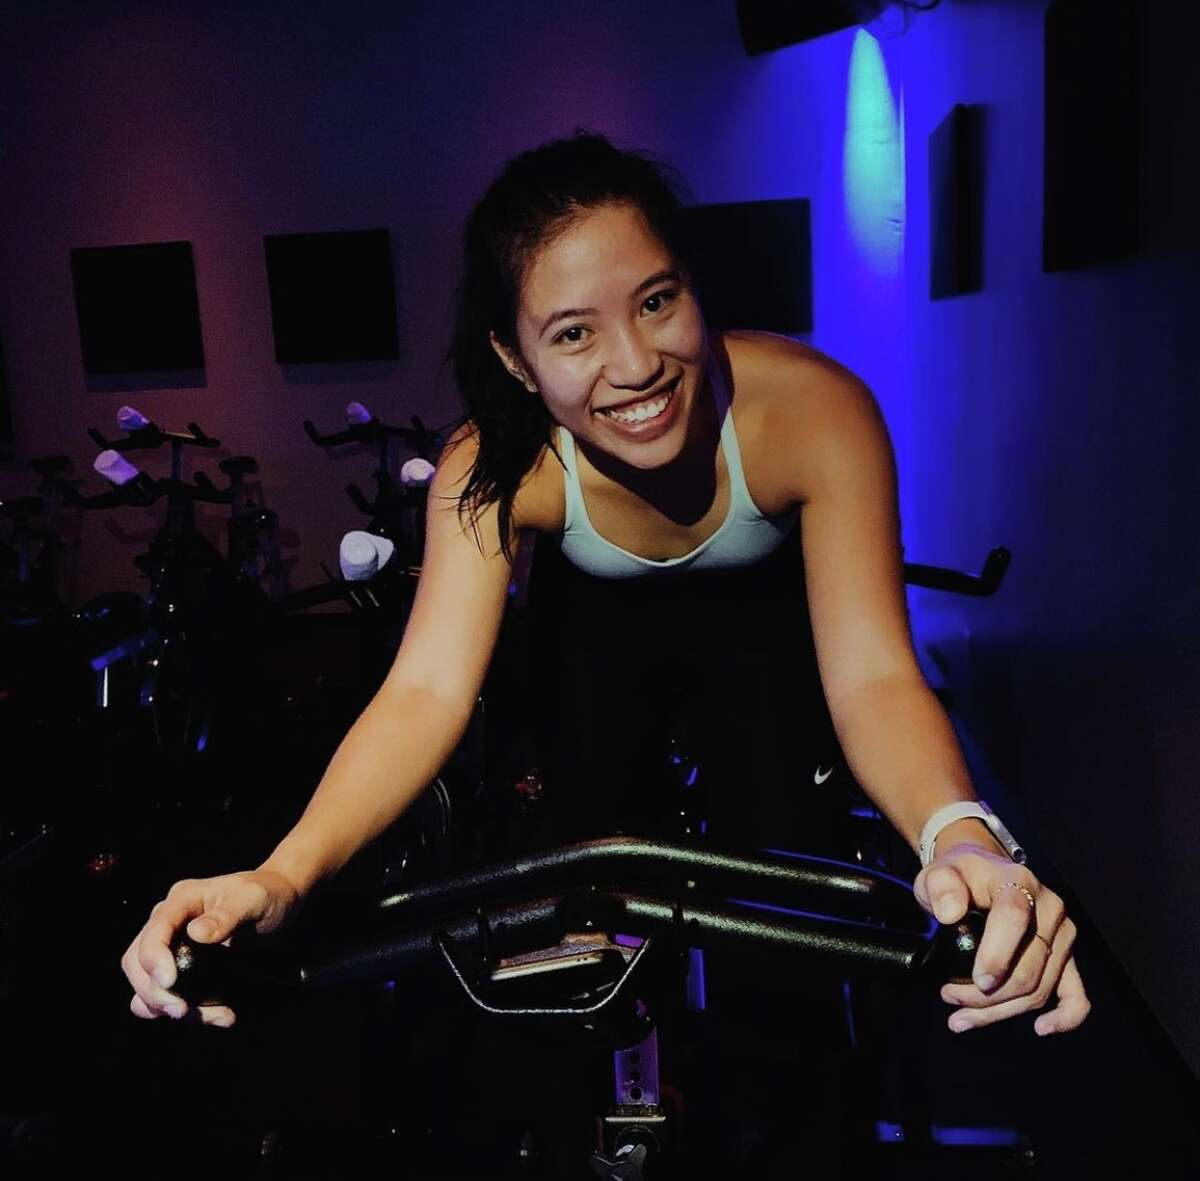 Revolution Cycling Studio is offering free classes to all first time riders through March 31 to celebrate the grand opening of its new location, according to a news release from the business.